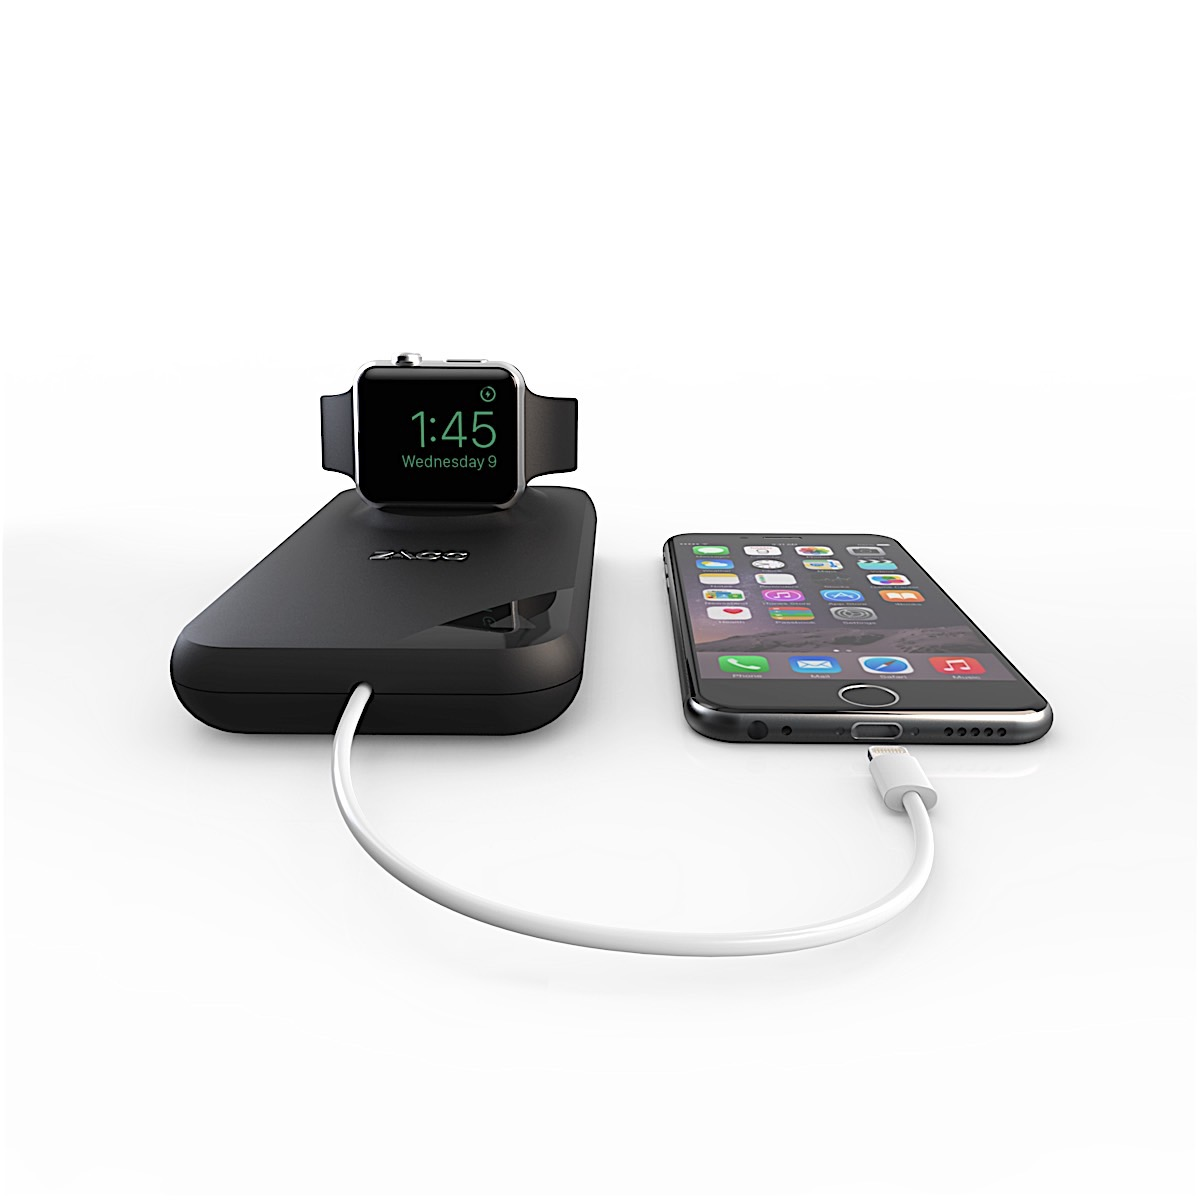 zagg portable charger instructions